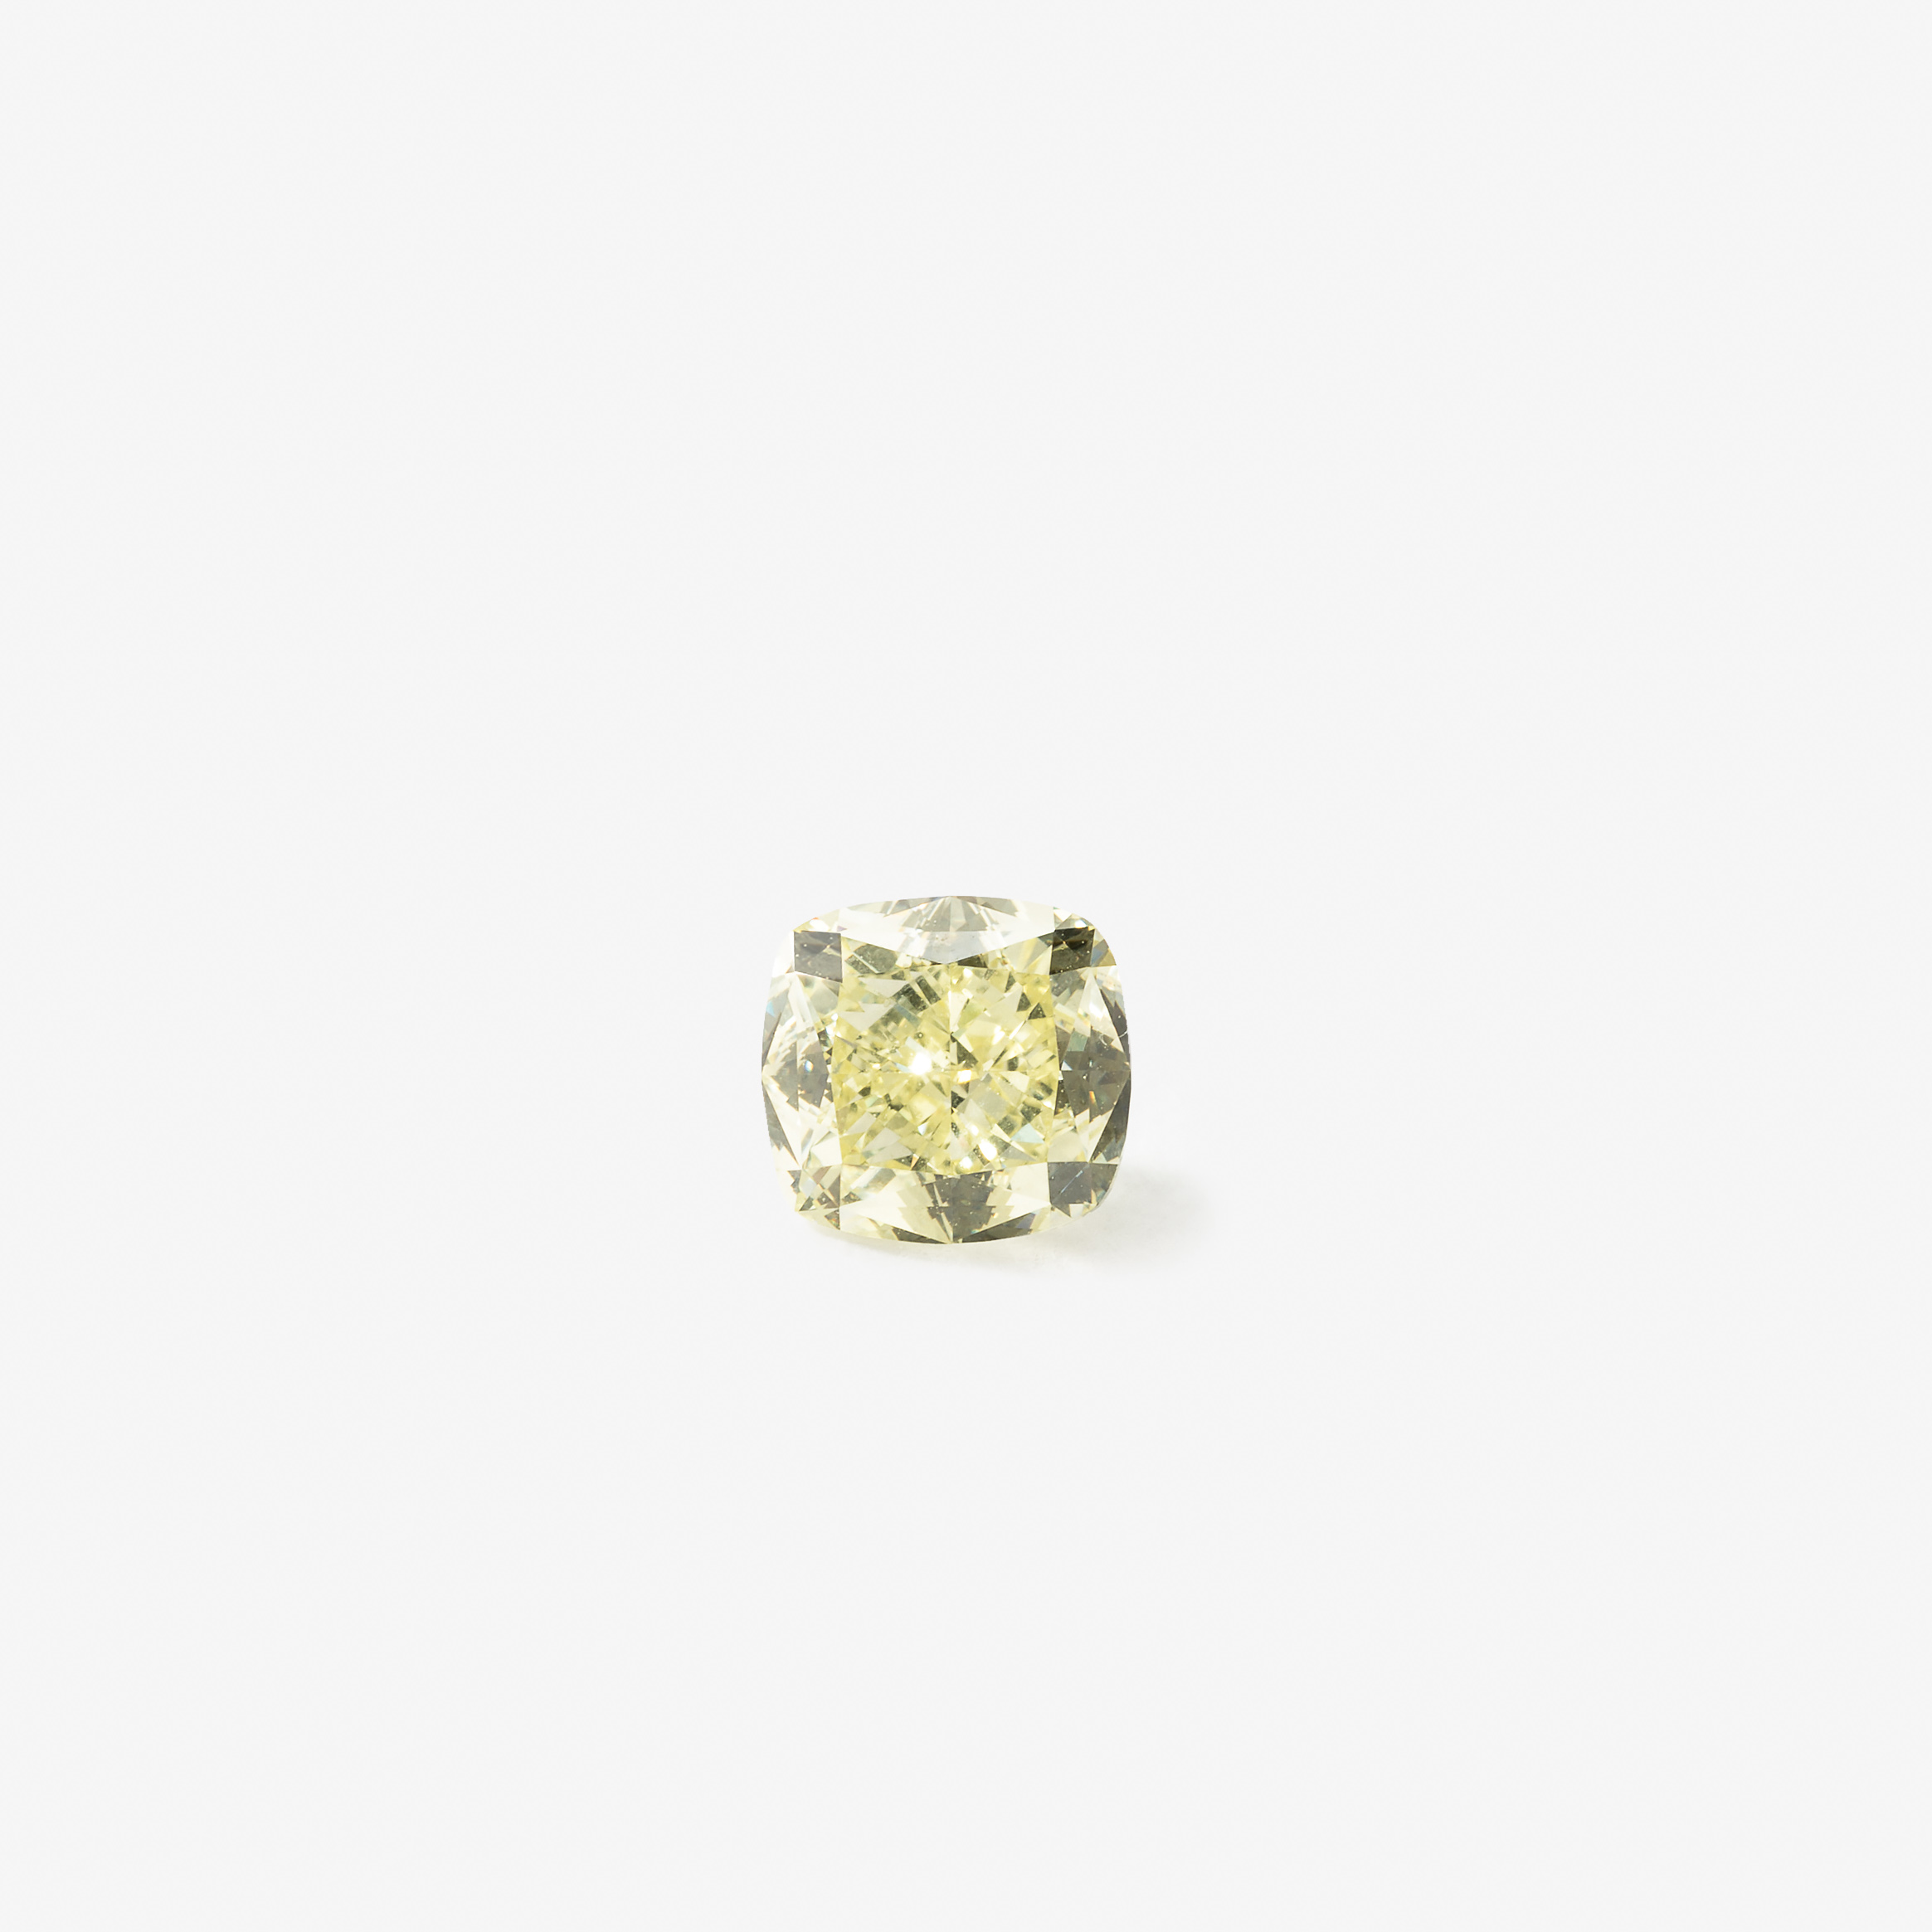 A cushion-cut diamond weighing 1.39 carat With GIA certificate: Fancy Light Yellow, Natural Even, IF, numbered GIA 2173378445, 18 November 2015 Estimate: $10 500-14 000 (€ 9 000 - 12 000)